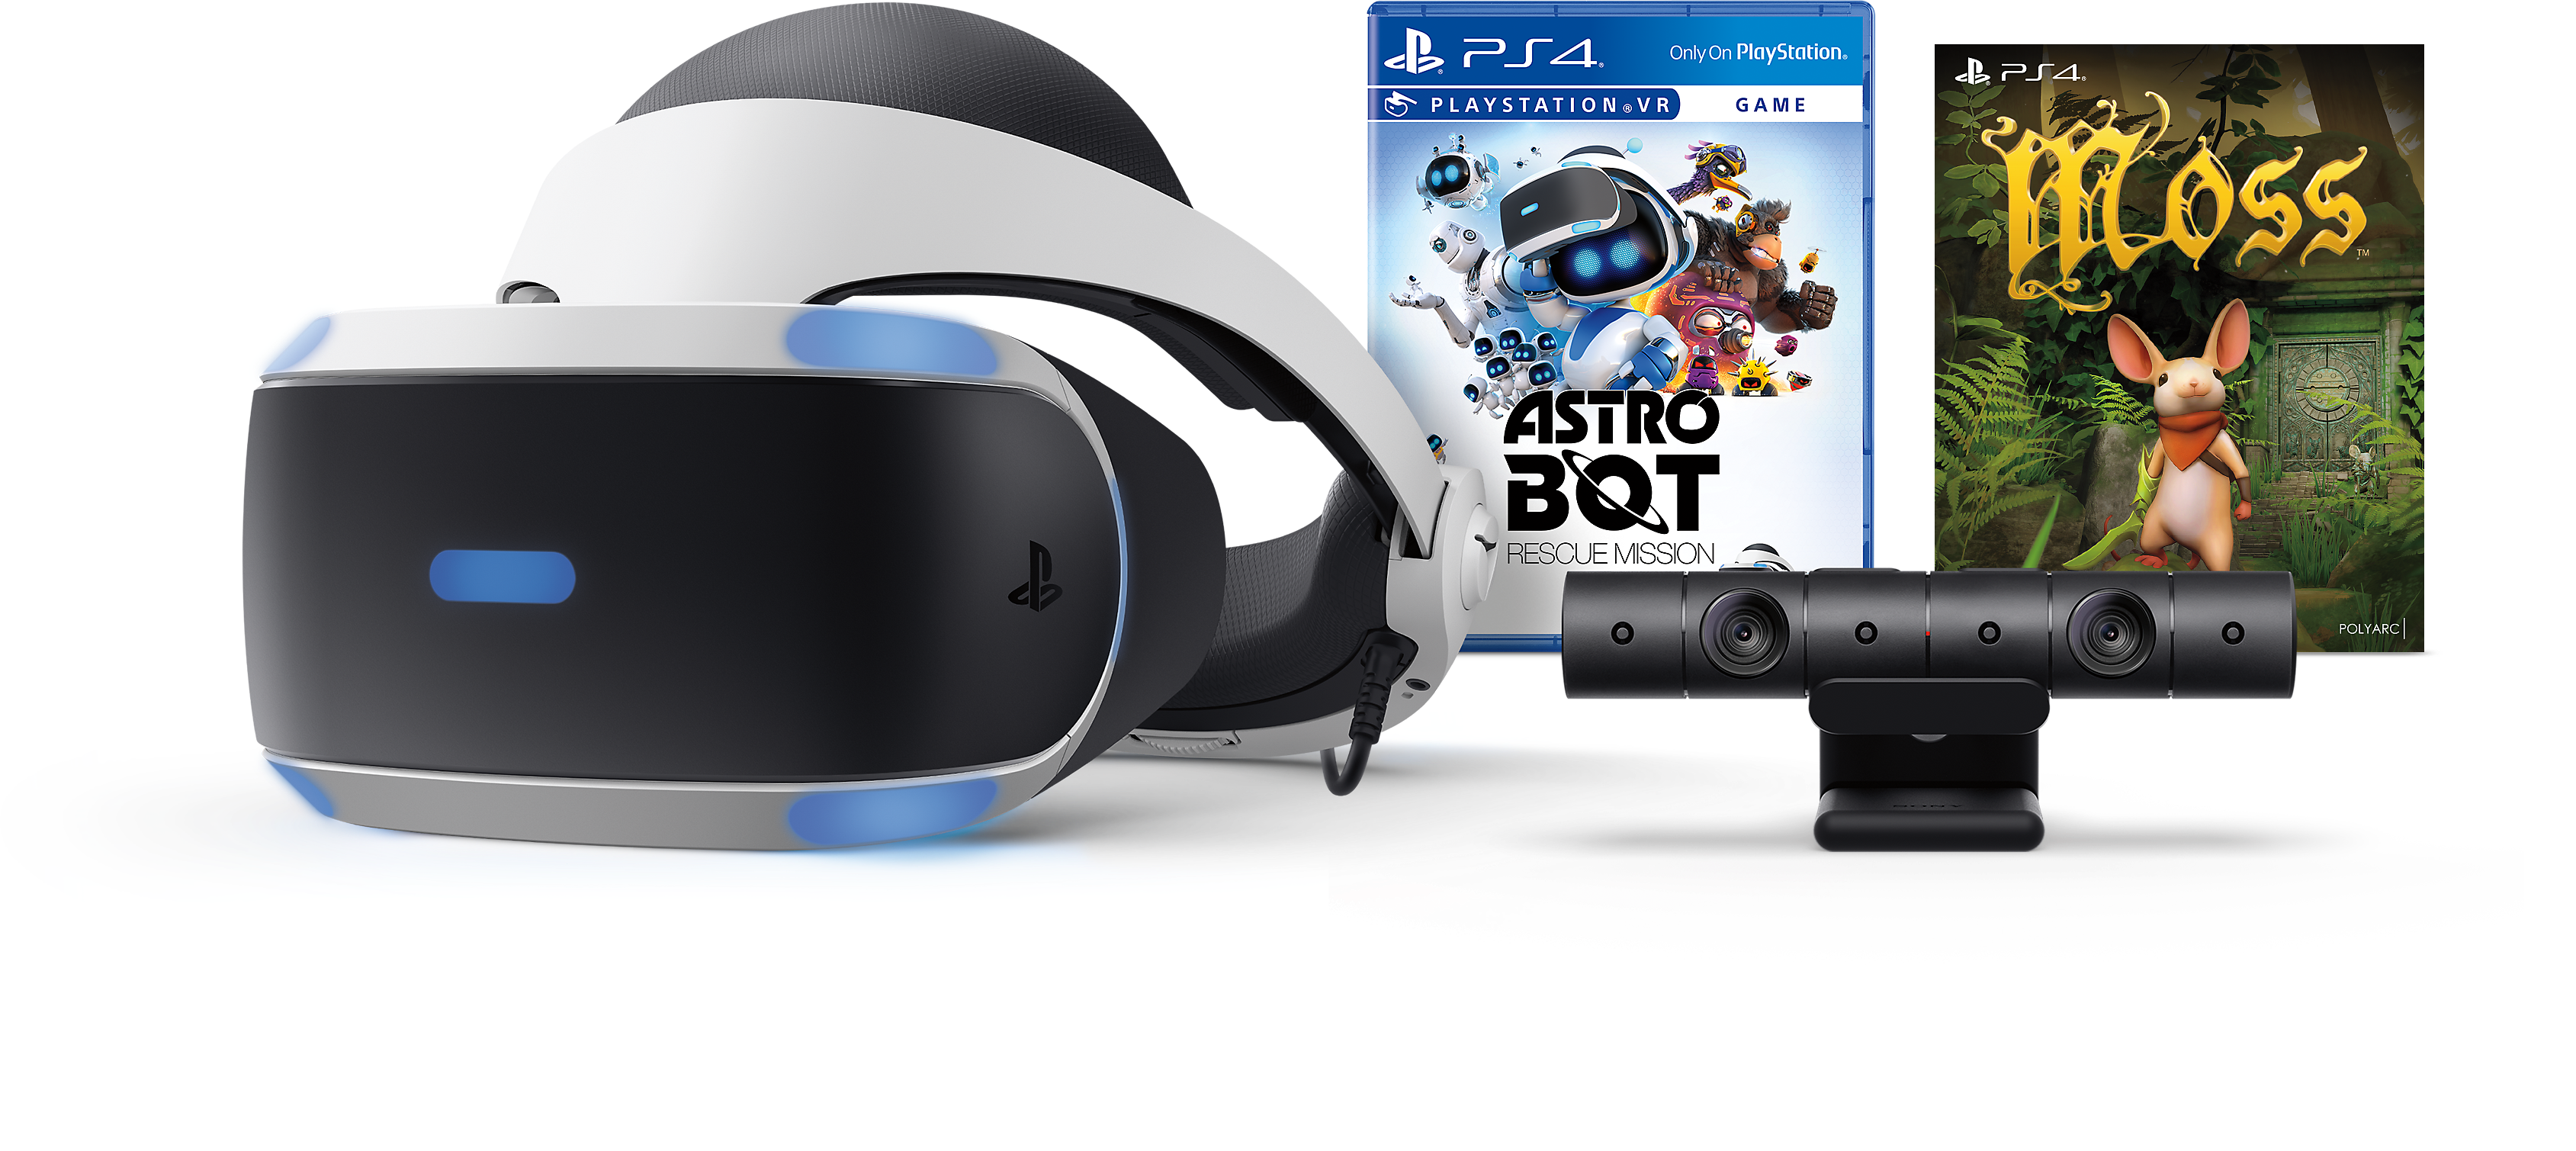 ASTRO BOT Rescue Mission and Moss Bundle Product Shot